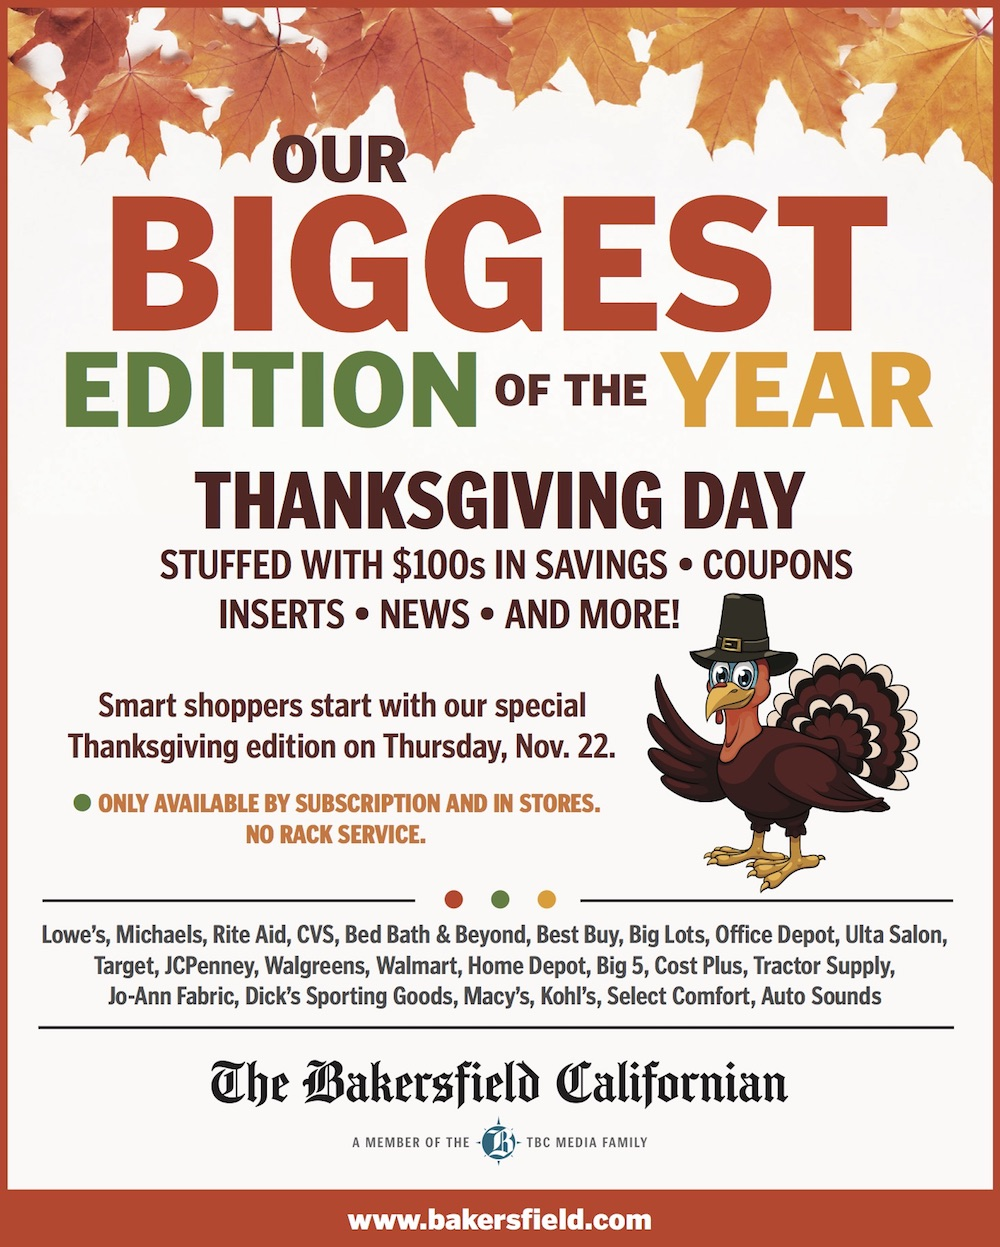 Our biggest editon of the year for Thanksgiving day!